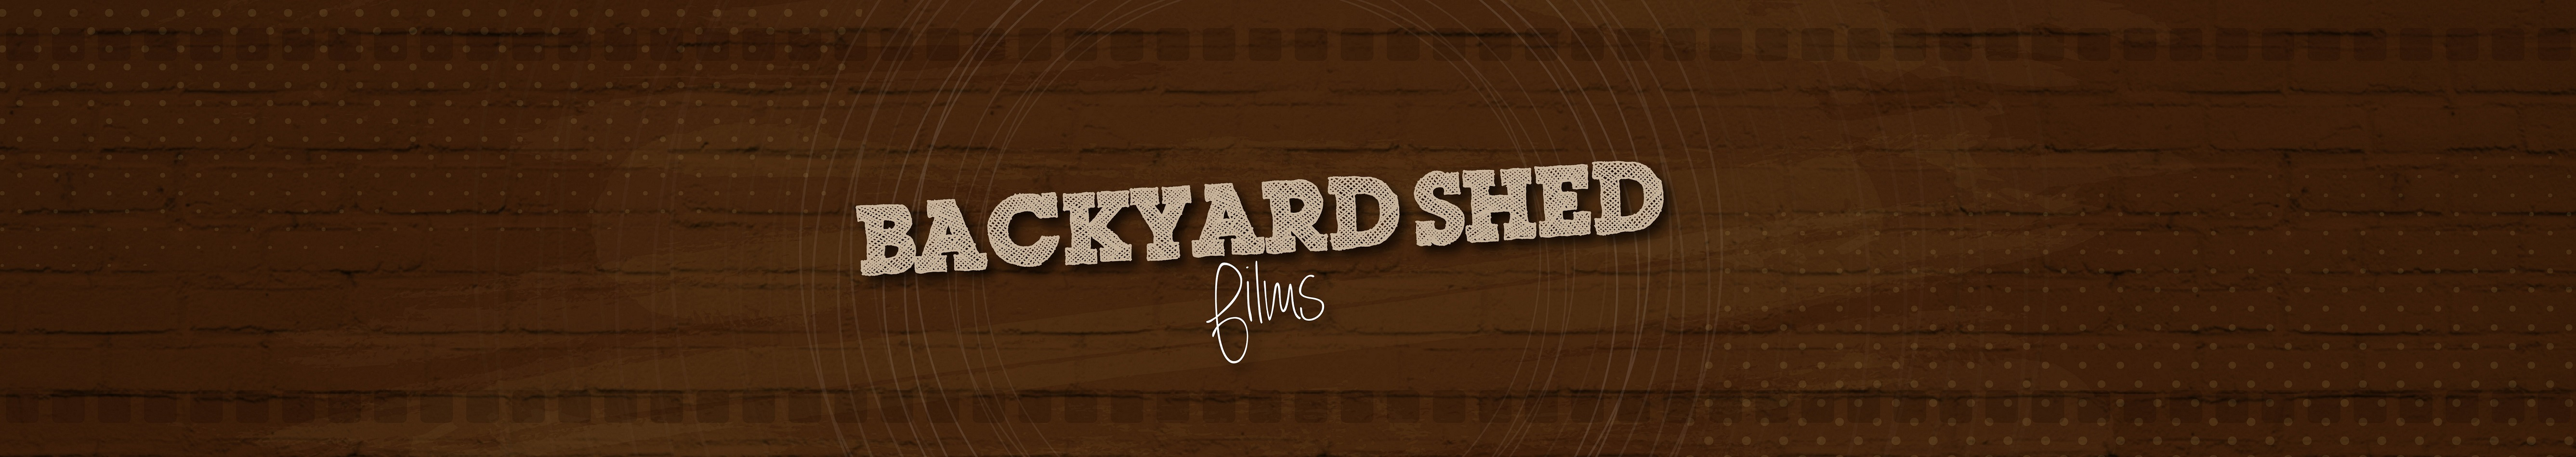 Member Shortcode | Backyard Shed Films